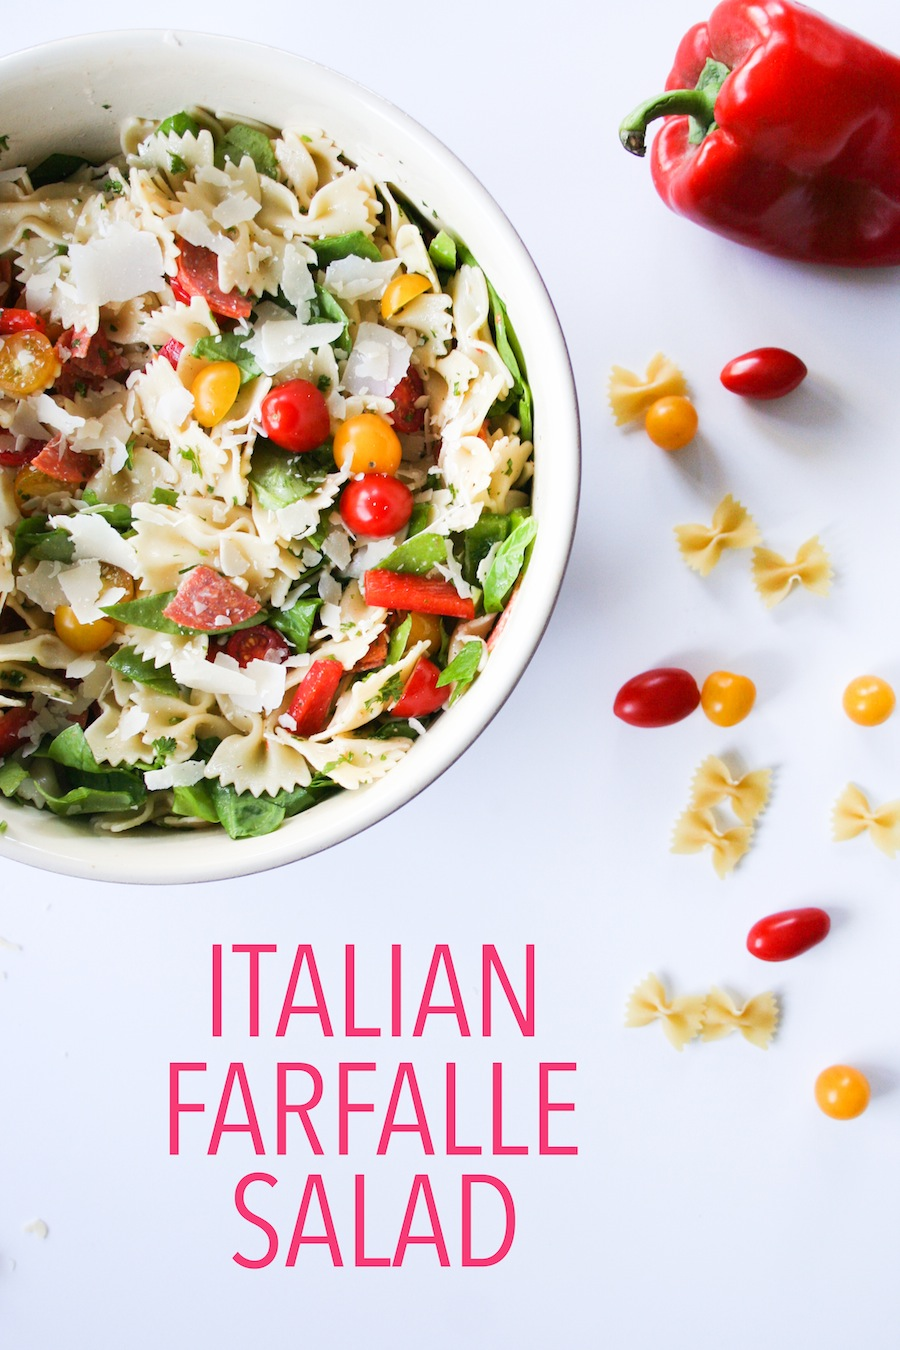 Italian Farfalle Salad // Bowtie Pasta Salad // Legal Miss Sunshine